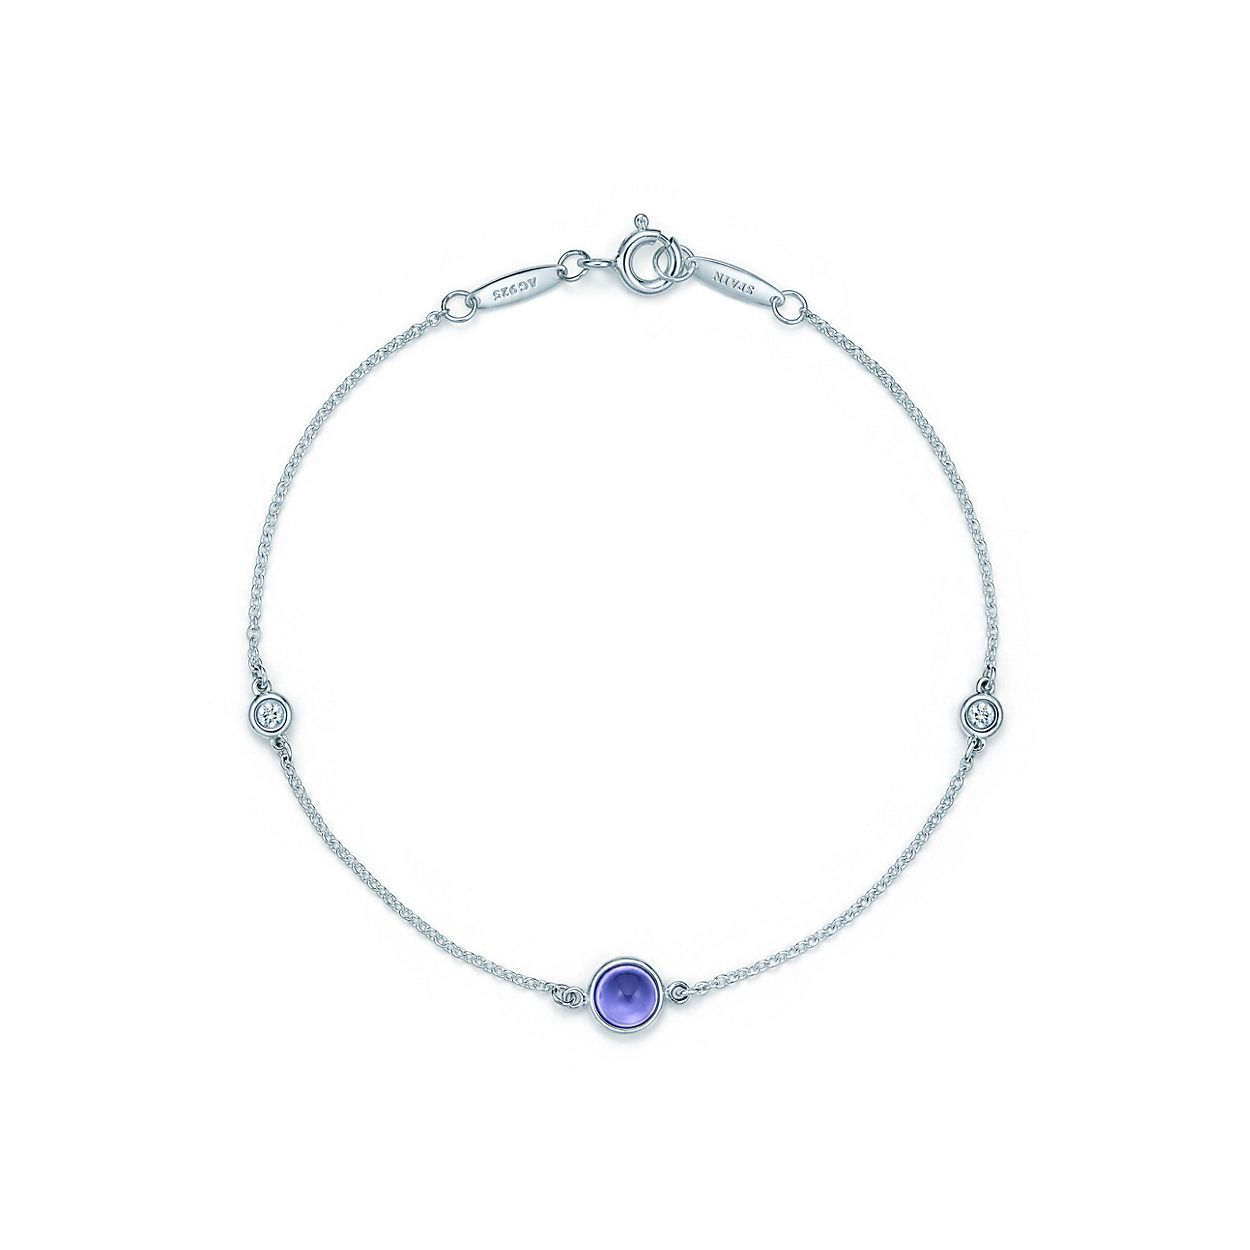 image s jewellery berrys amp gold diamond berry bracelets bracelet tanzanite jewellers white from